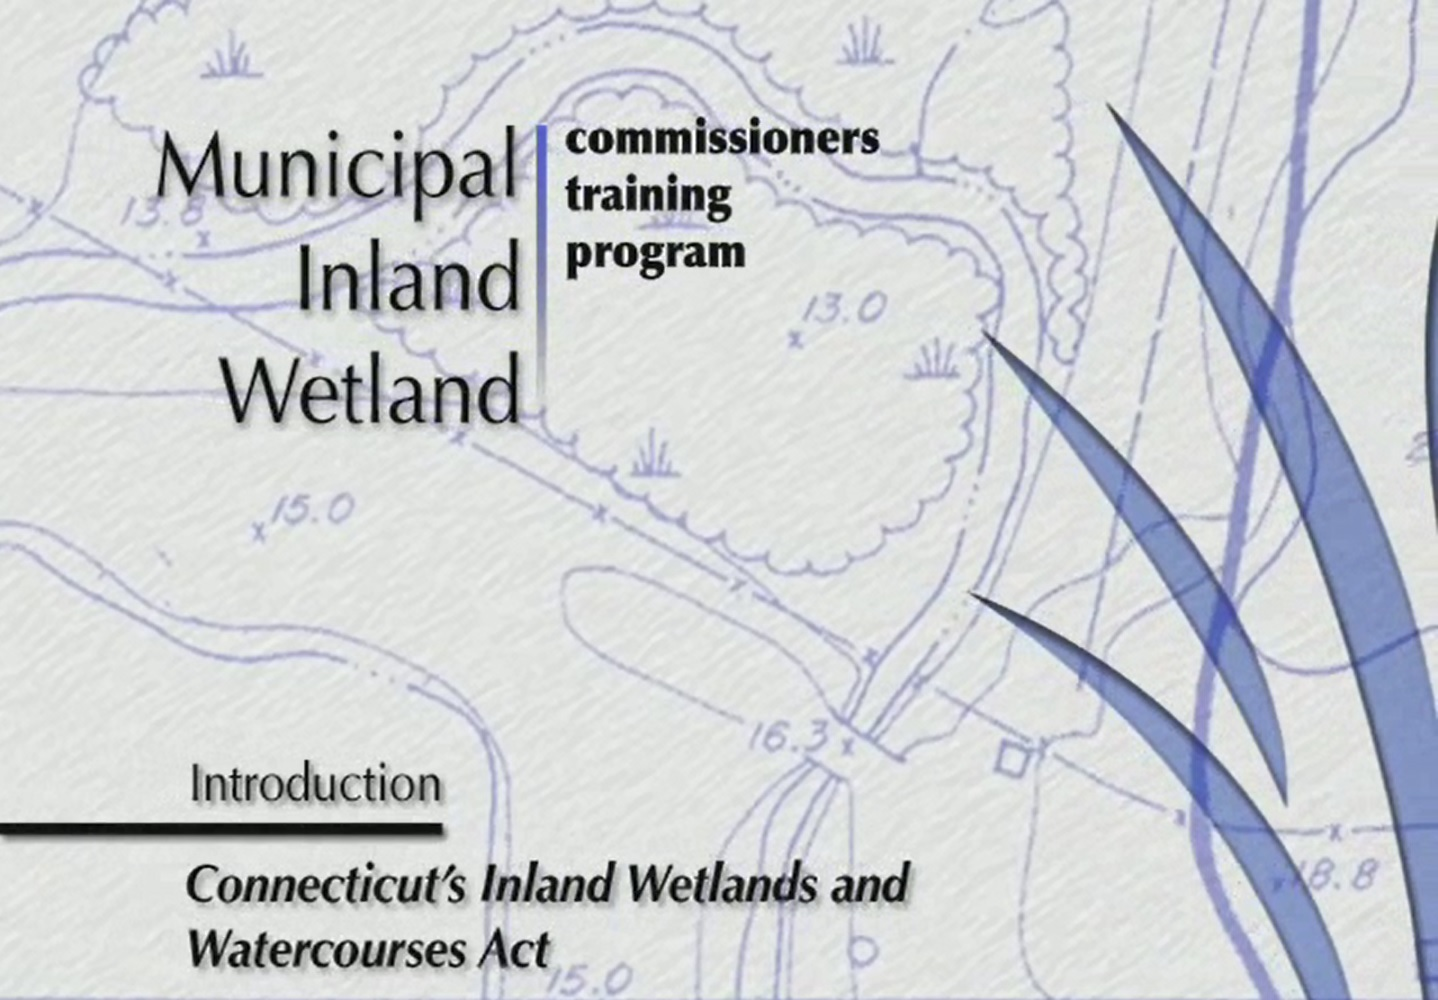 Municipal Inland Wetlands Training Video 1 - Introduction to Connecticut's Inland Wetlands & Watercourses Act